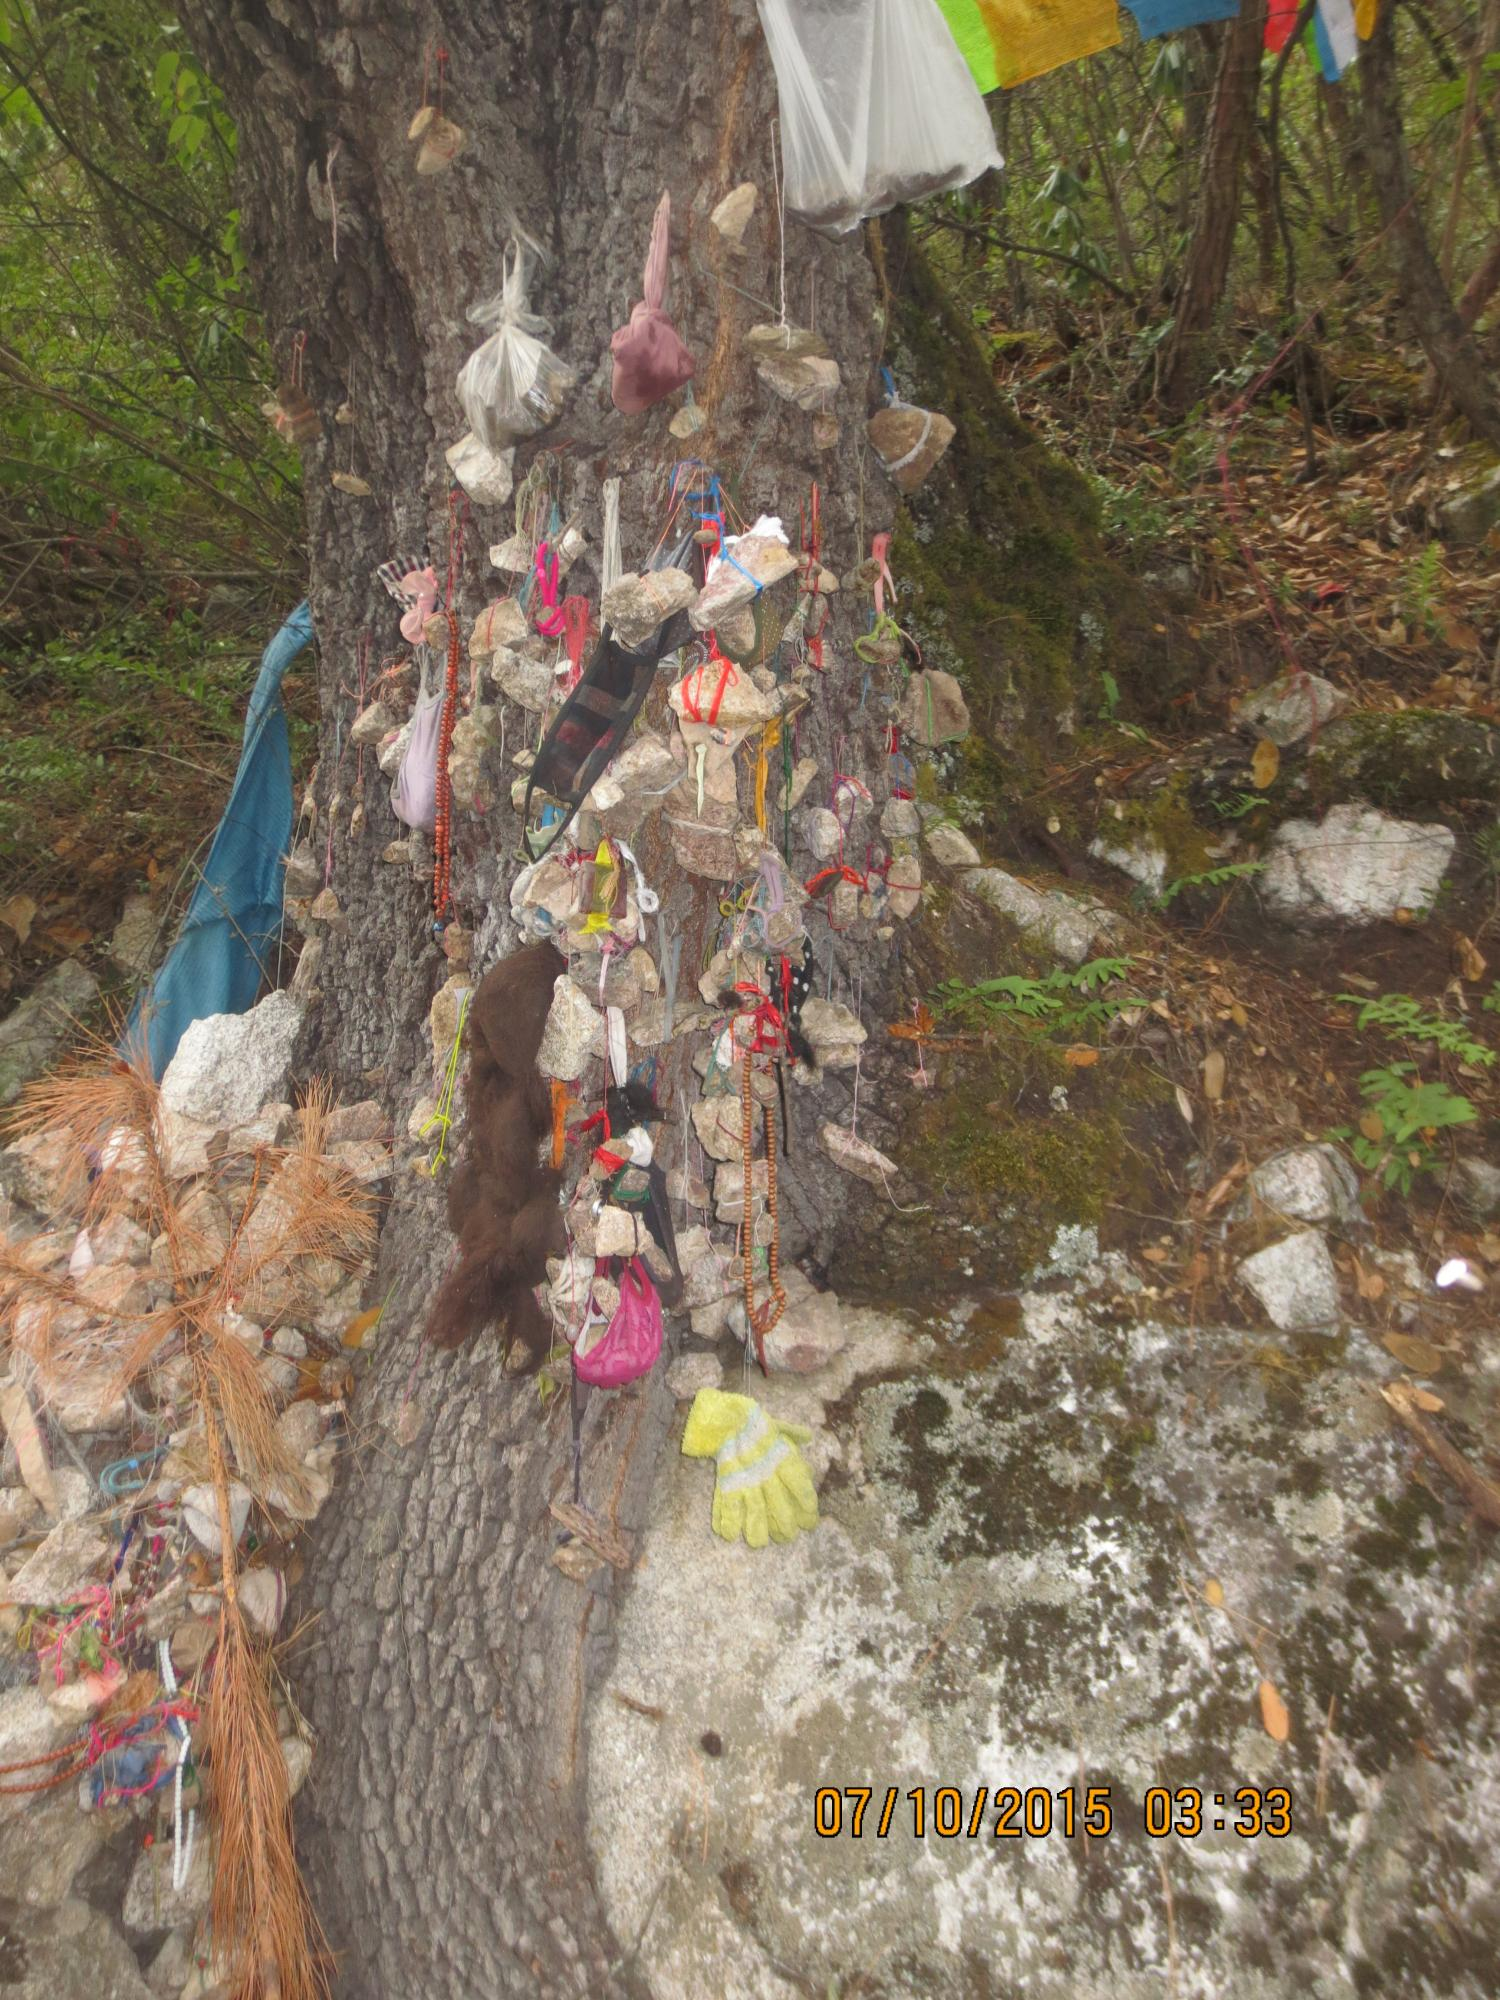 Along the route many pilgrims fasten stones to strings and hang them from trees. These are said to be loaded with the pilgrims' sins, now left behind on the path.